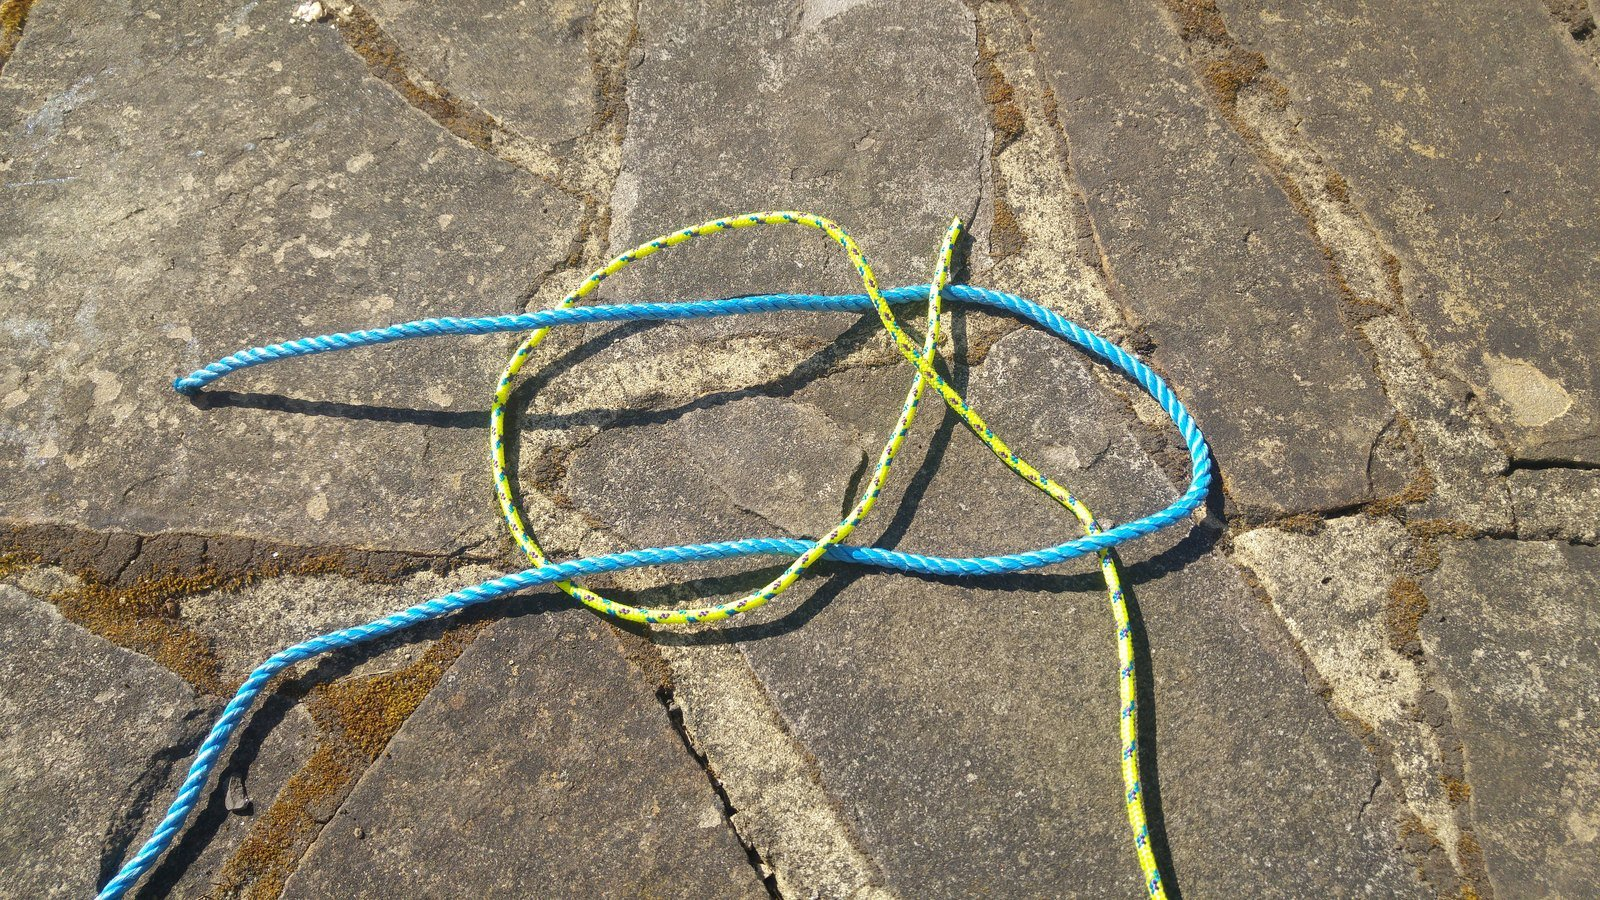 A sheet bend knot being created